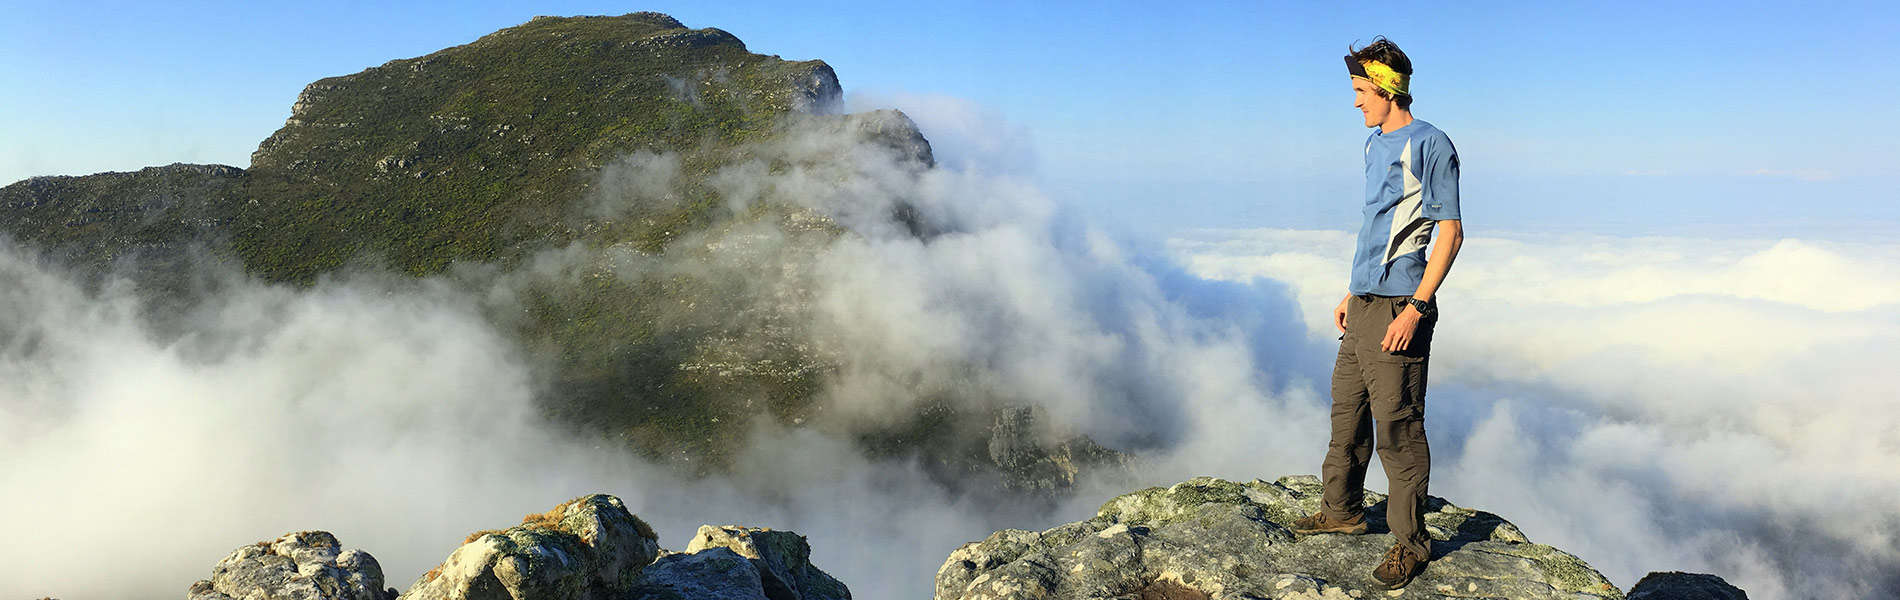 http://hiketablemountain.co.za/wp-content/uploads/2016/09/BlogEdit.jpg